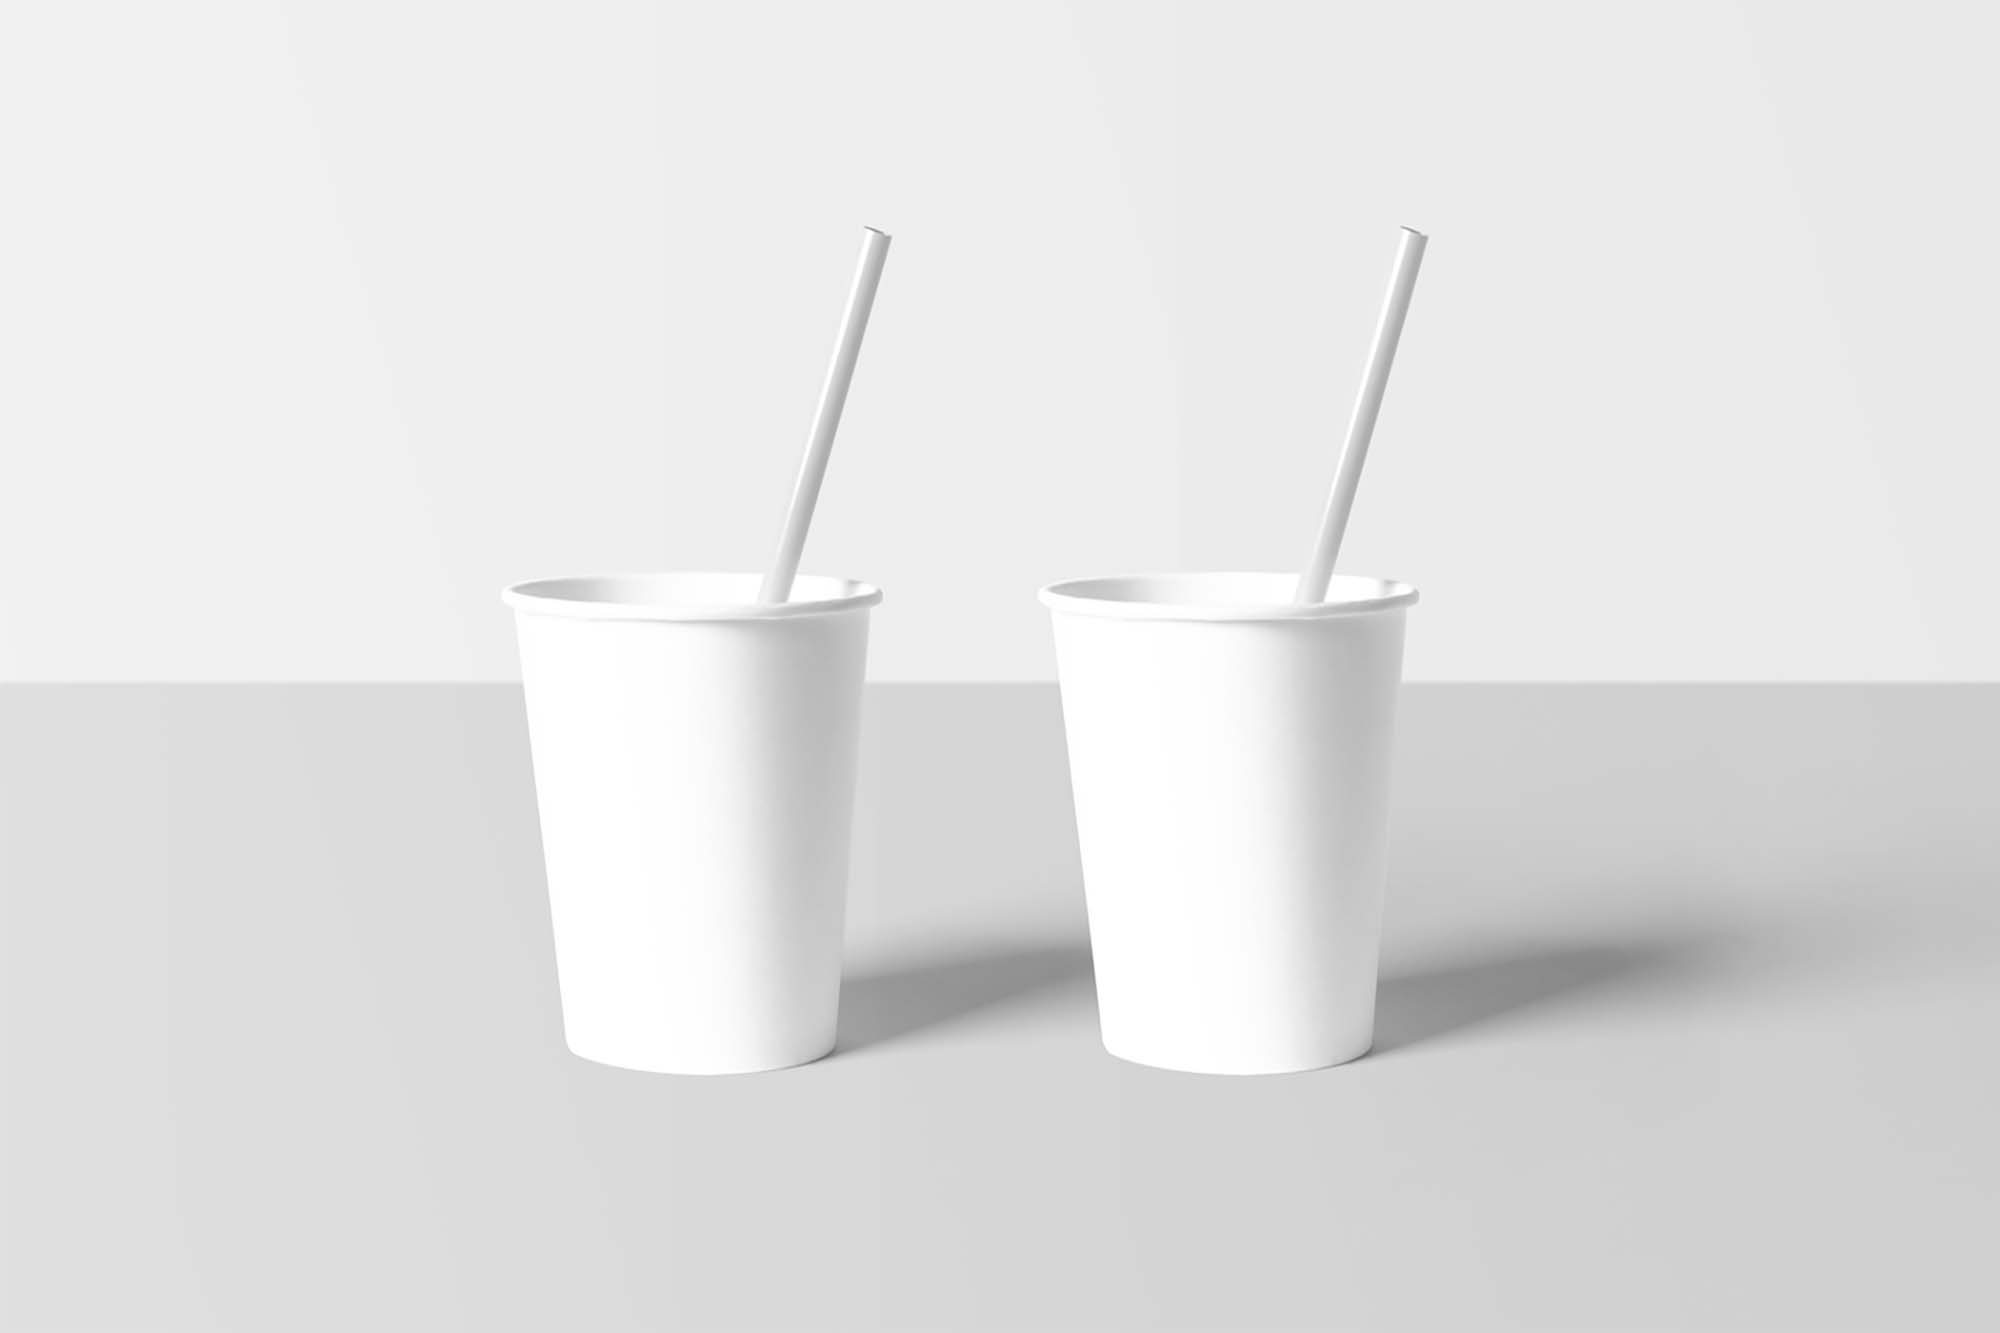 Paper Cups with Straw Mockup 2